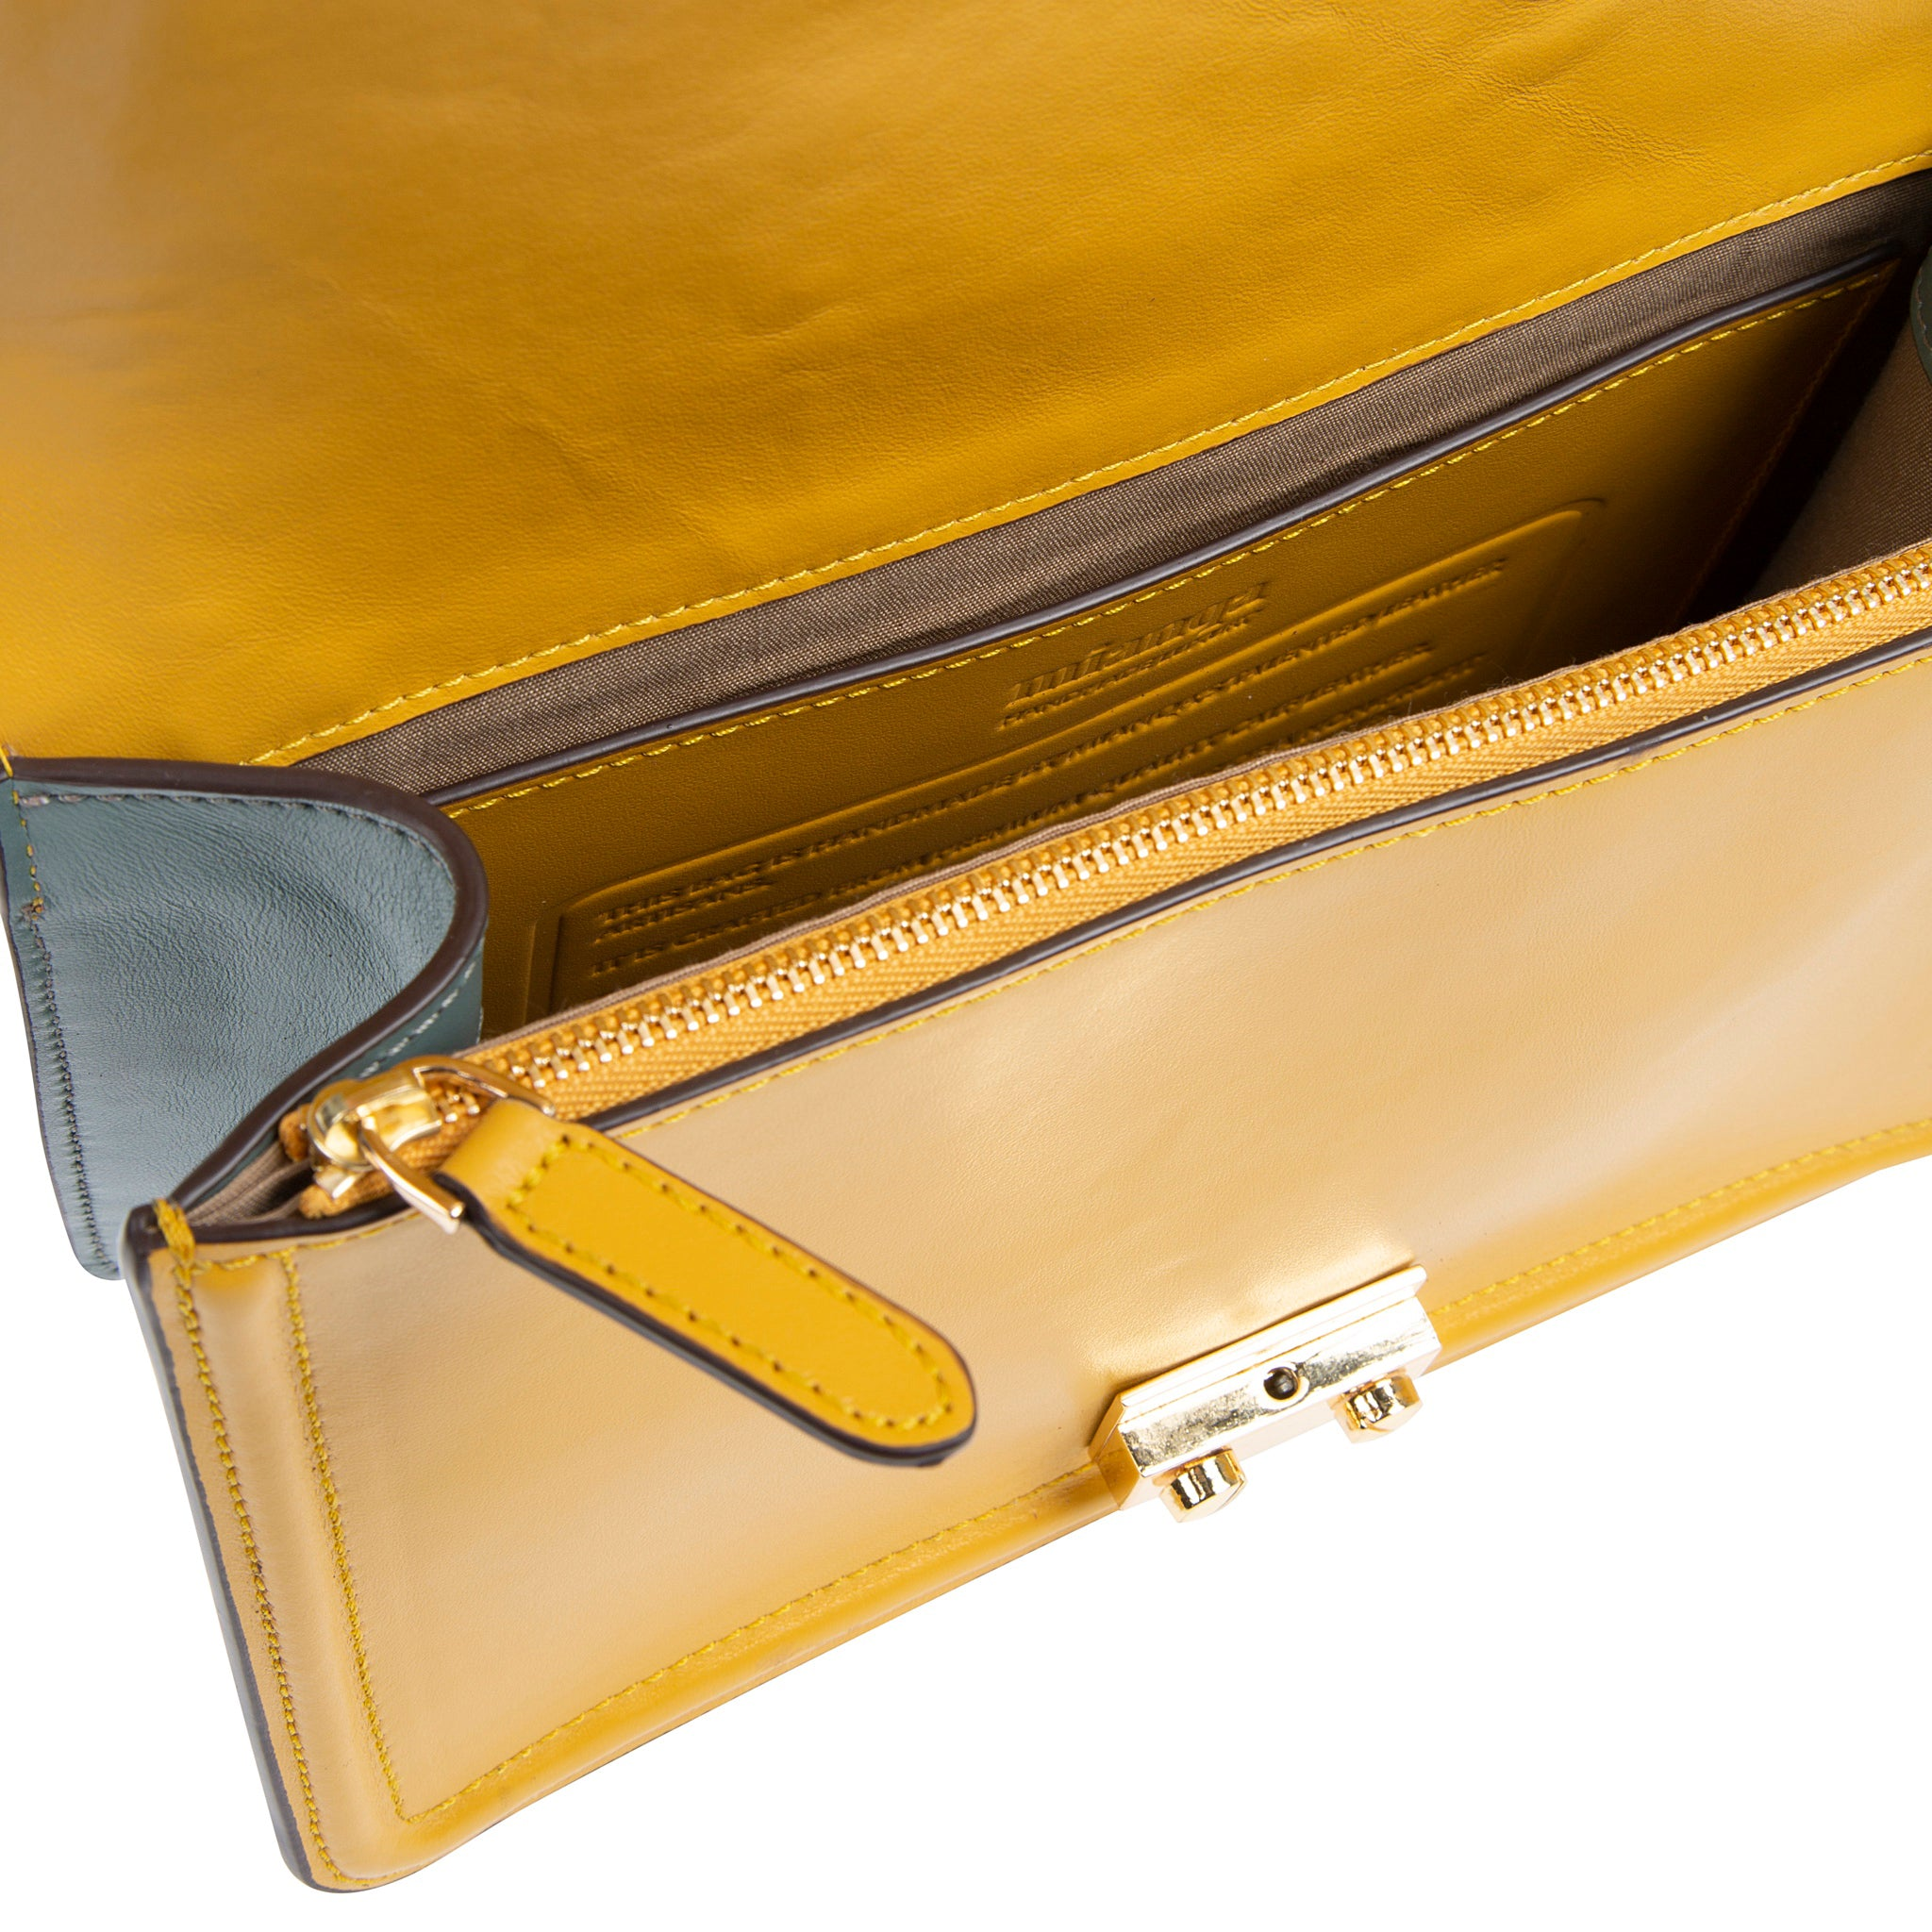 M U A L L A | Leather Shoulder Bag Yellow